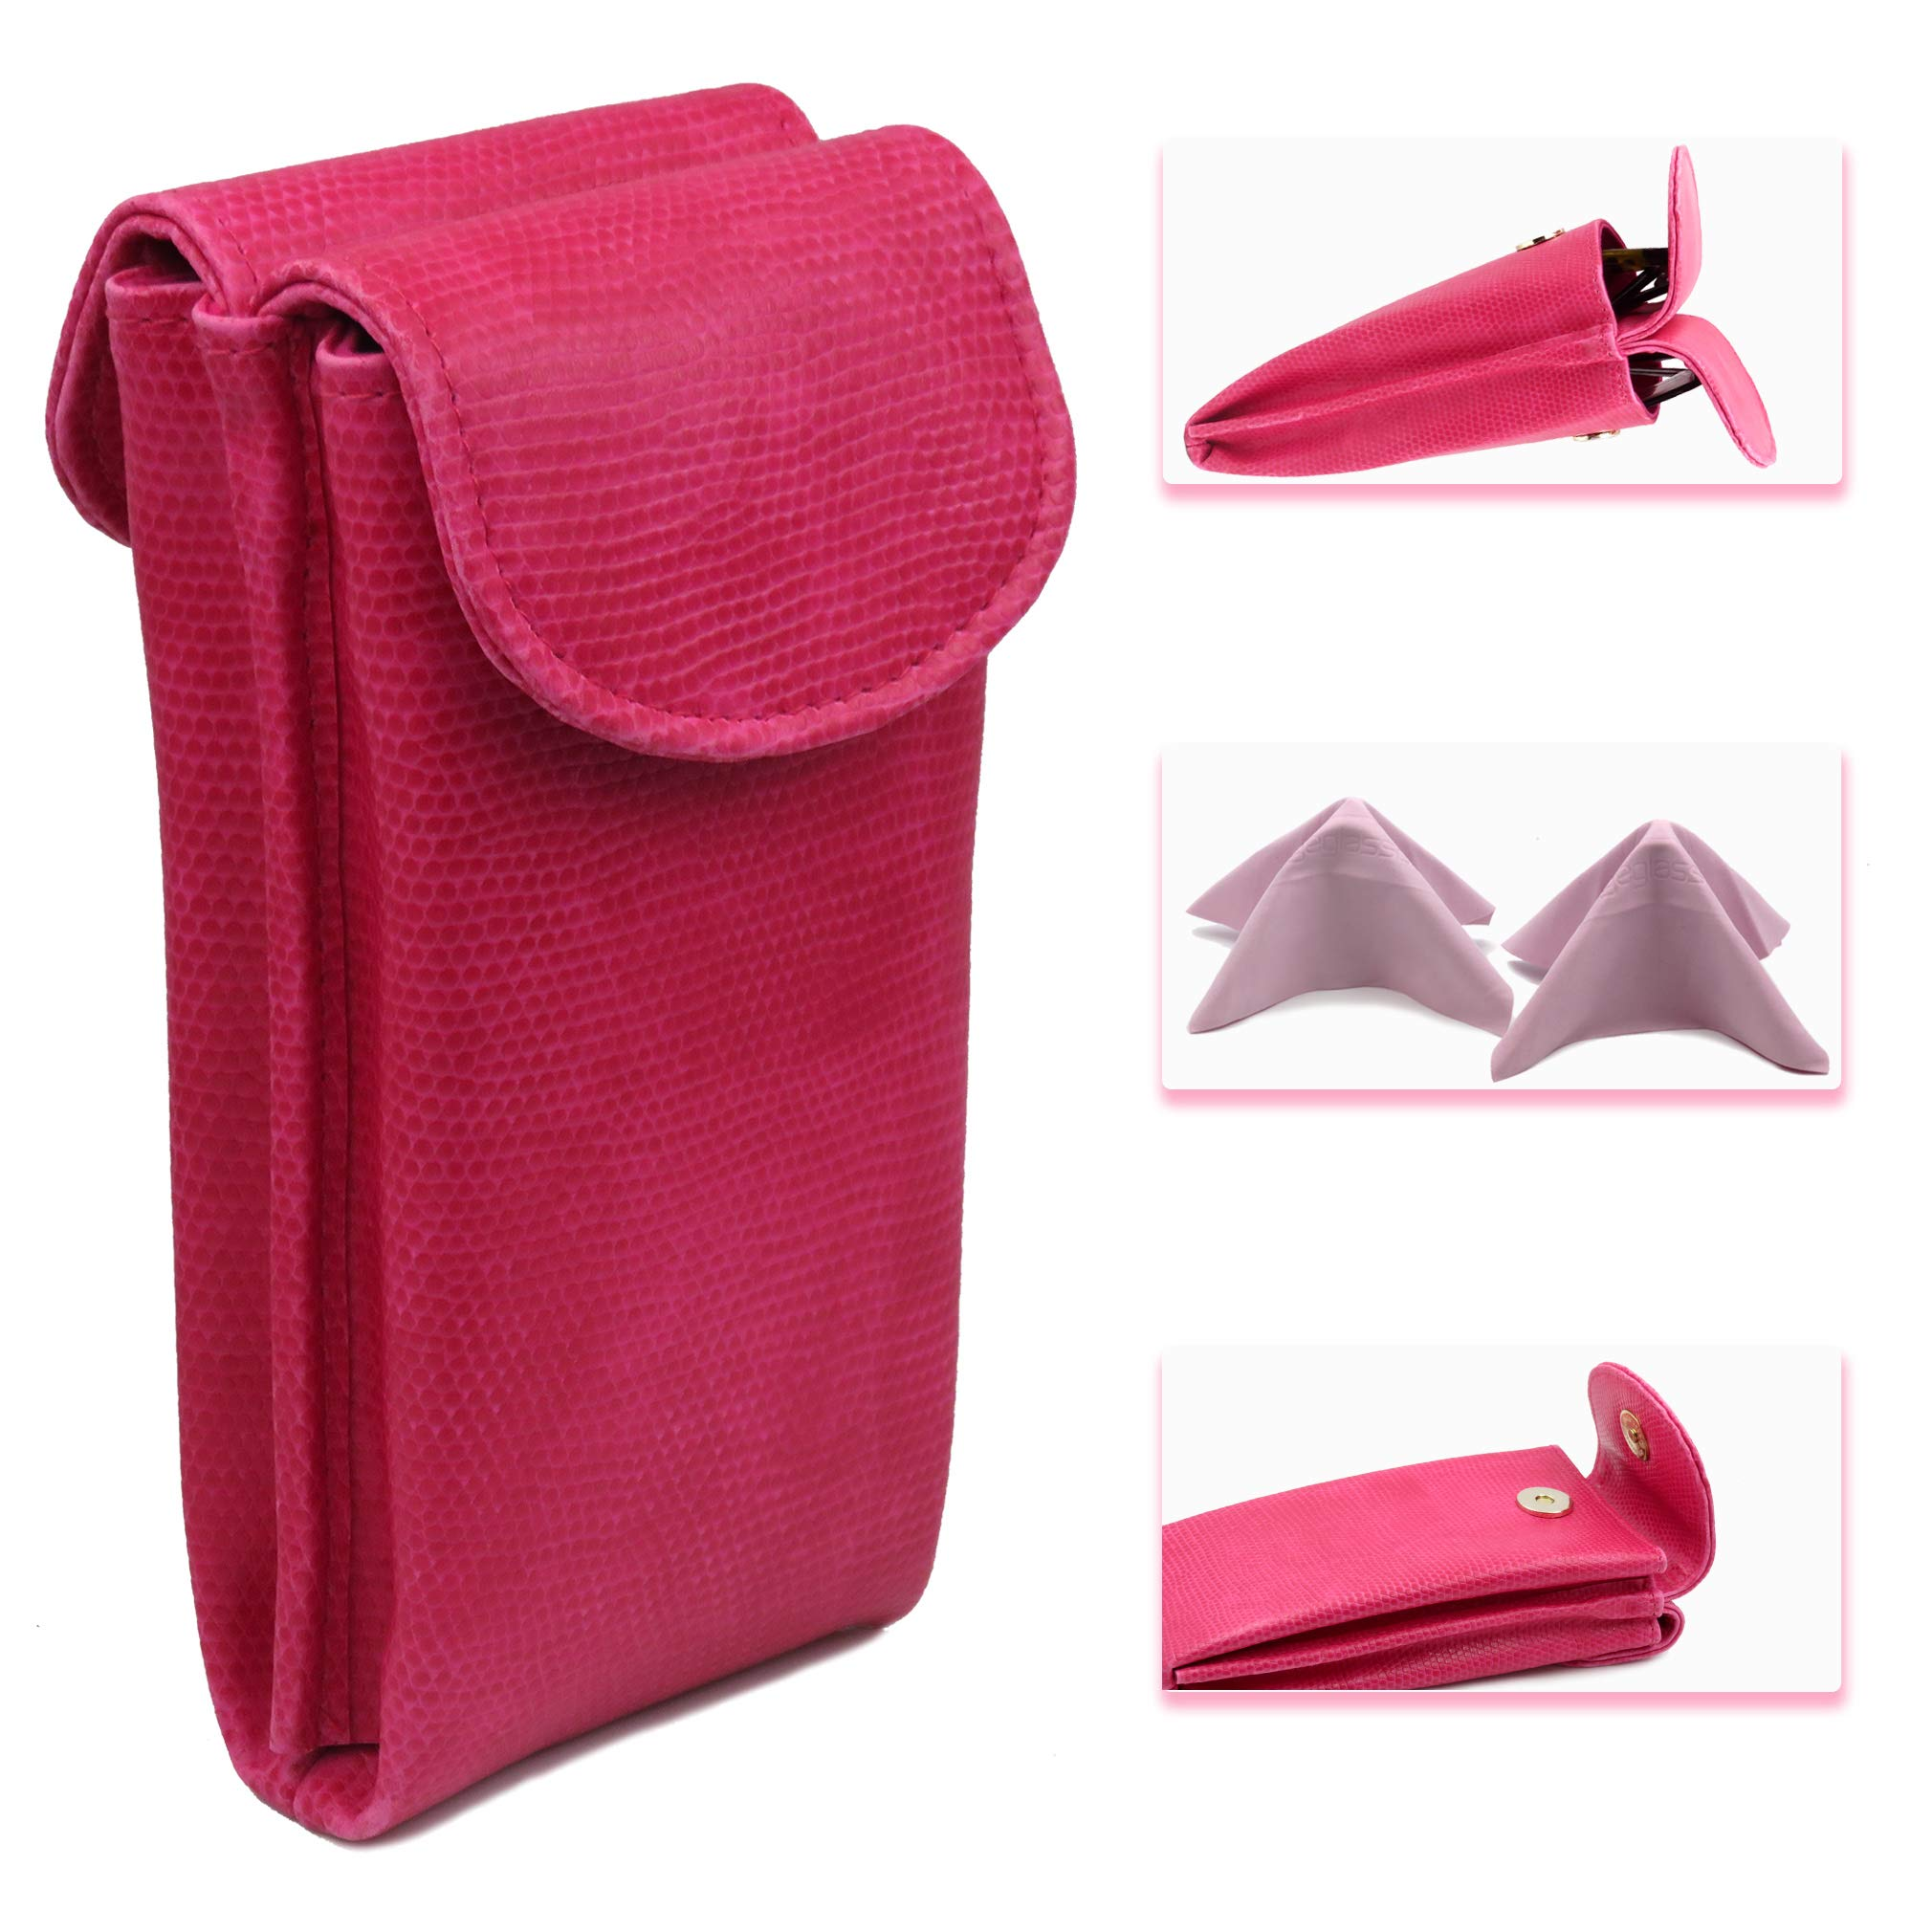 Pink Double Eyeglass Case for 2 frames | Soft Eyeglass case Semi Soft pouch with magnetic closure | comes with 2 microfiber cleaning cloths (IP836 Pink Snake)